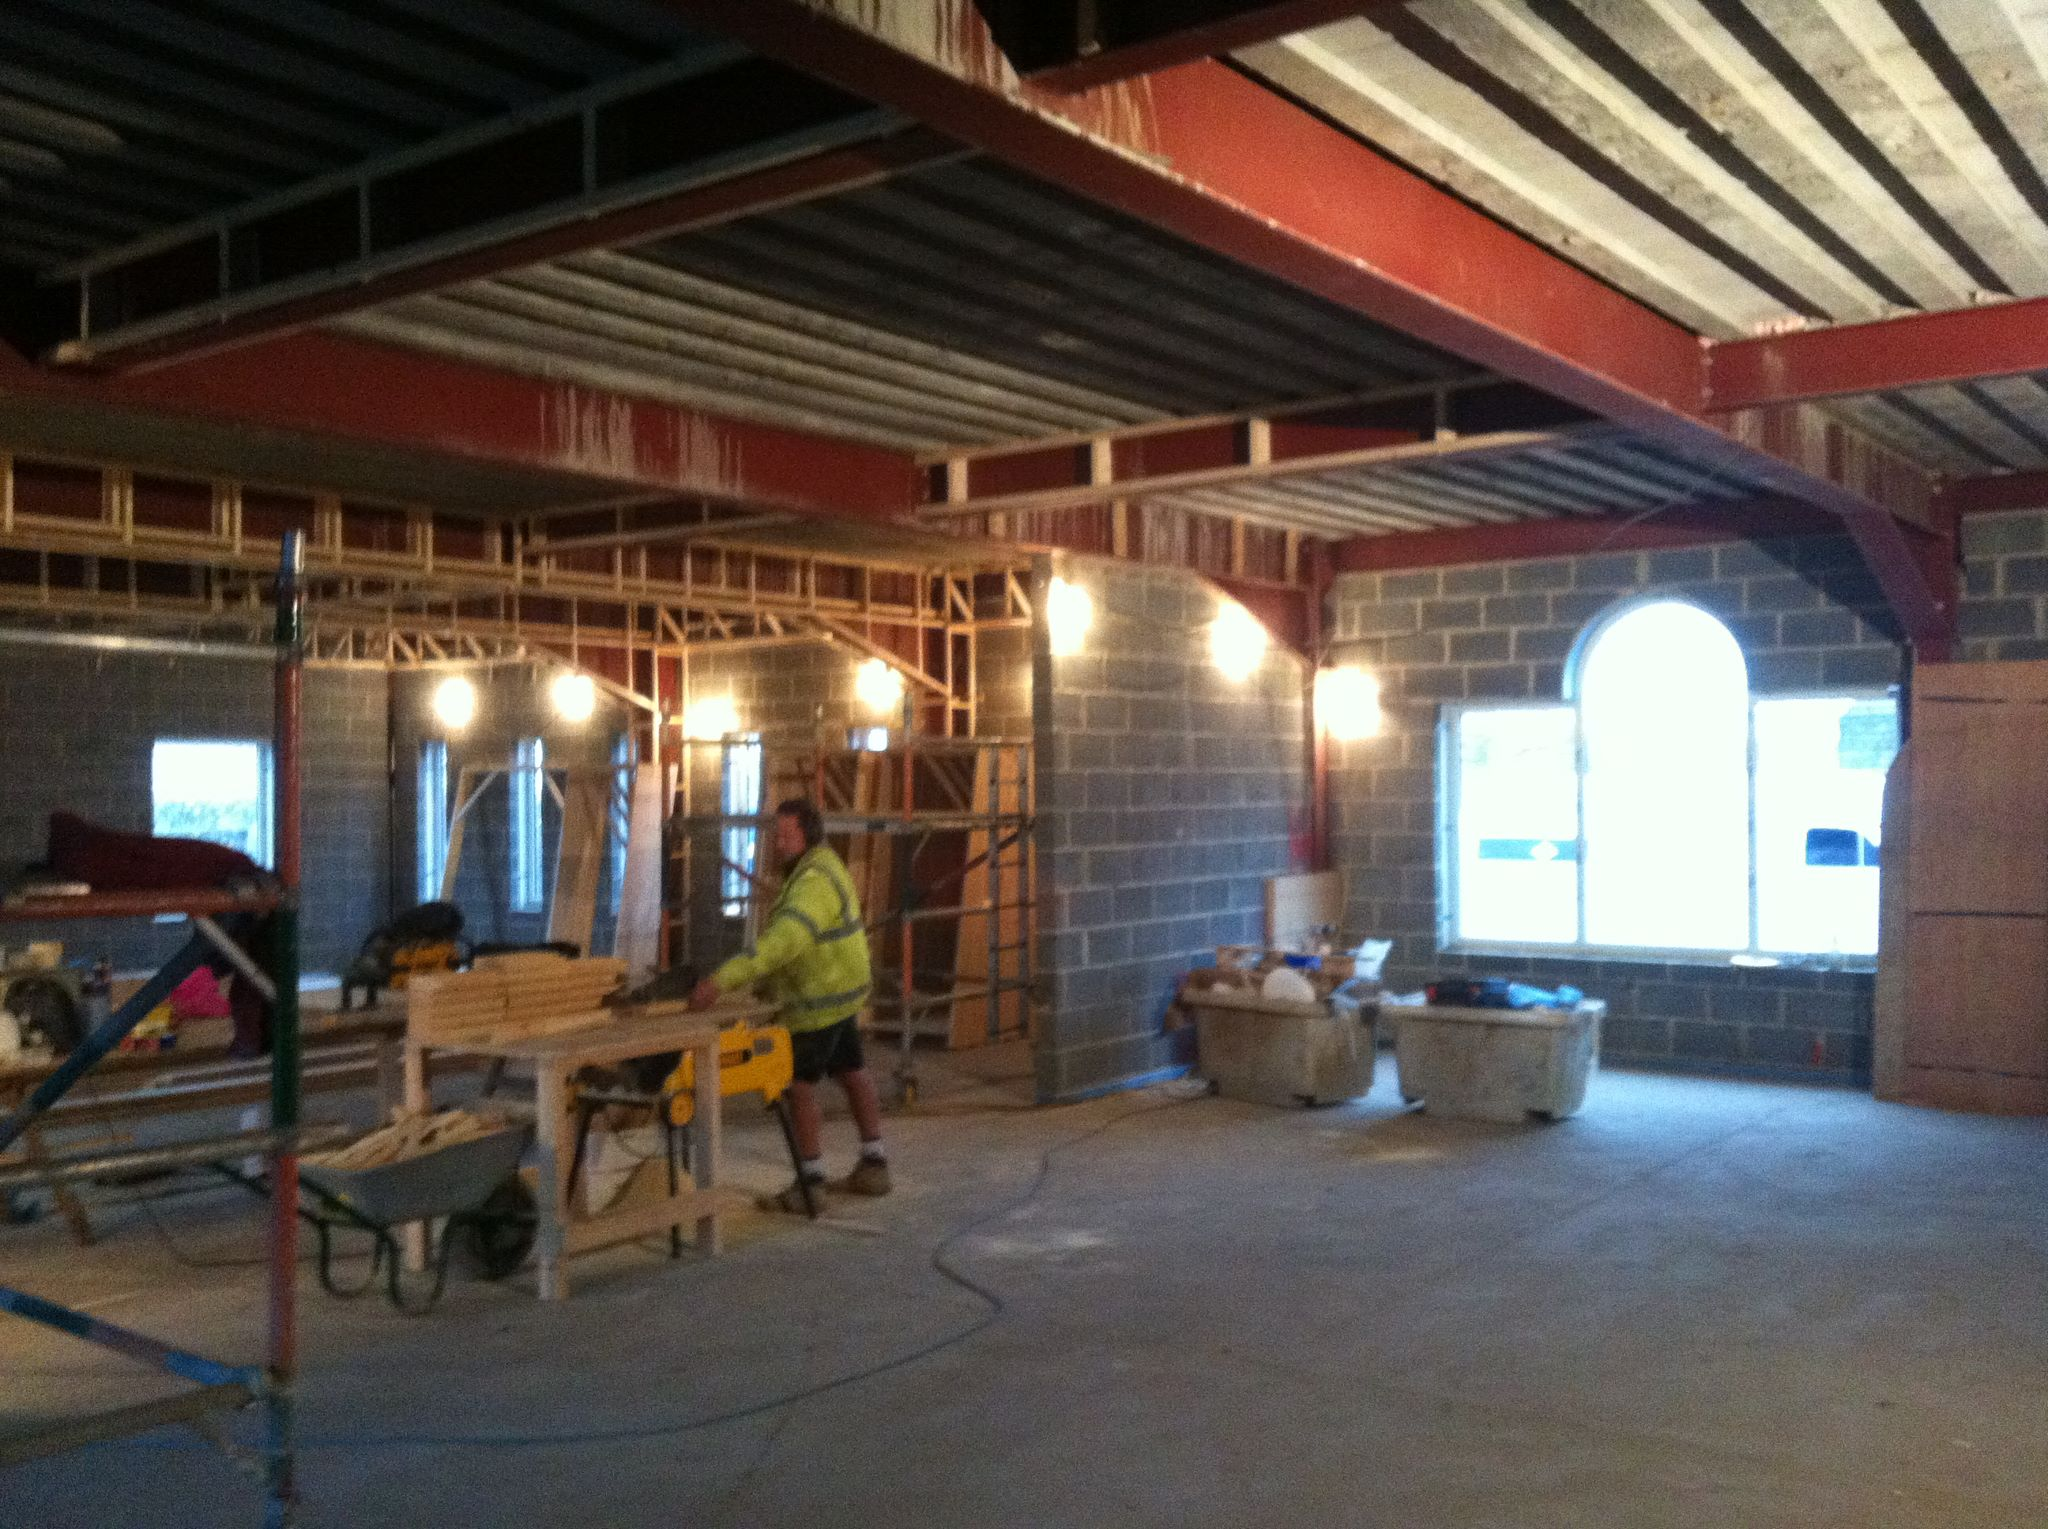 Stockport Construction – Various Commercial Projects - 21